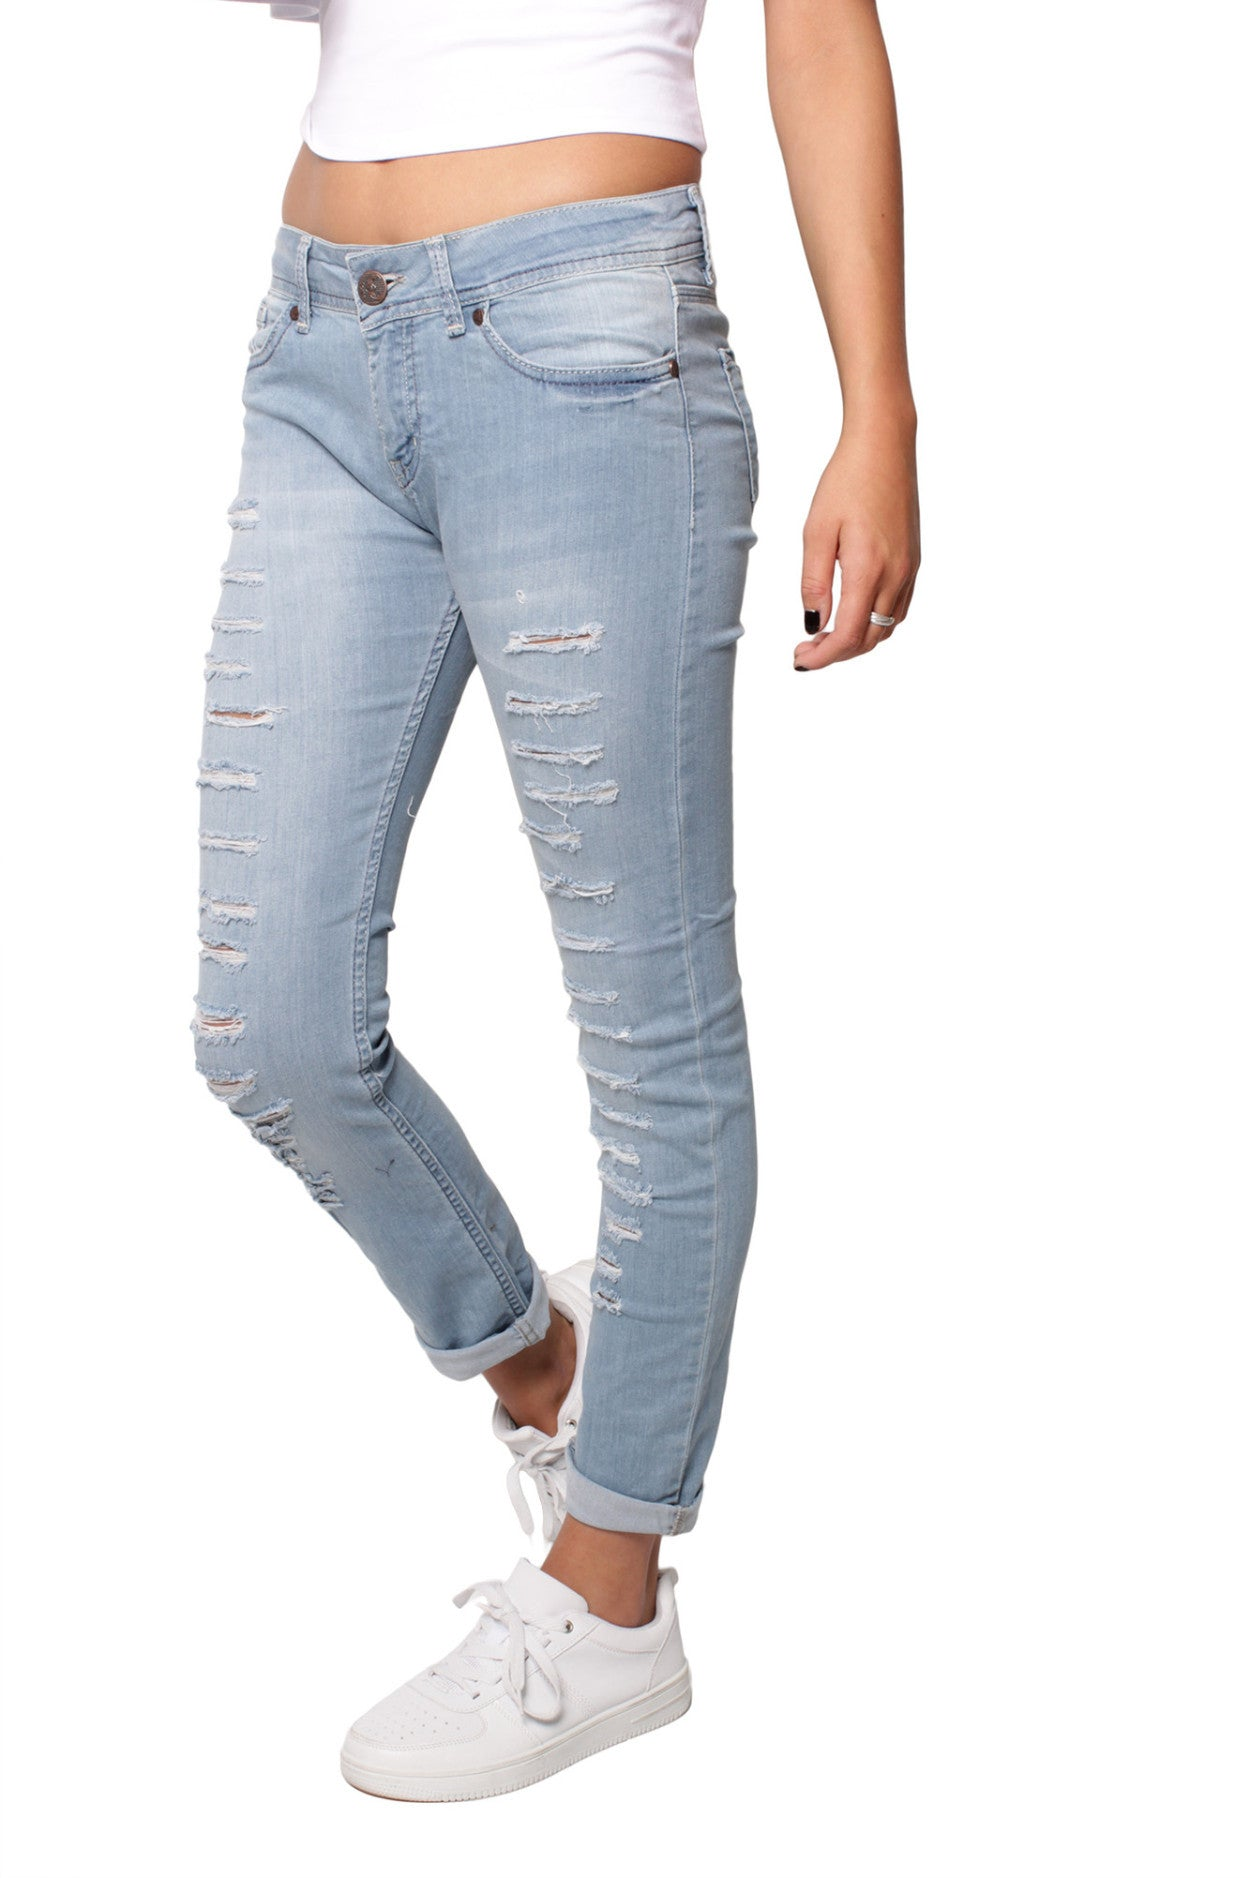 Blue 5 Pocket Extreme Ripped Skinny Jeans